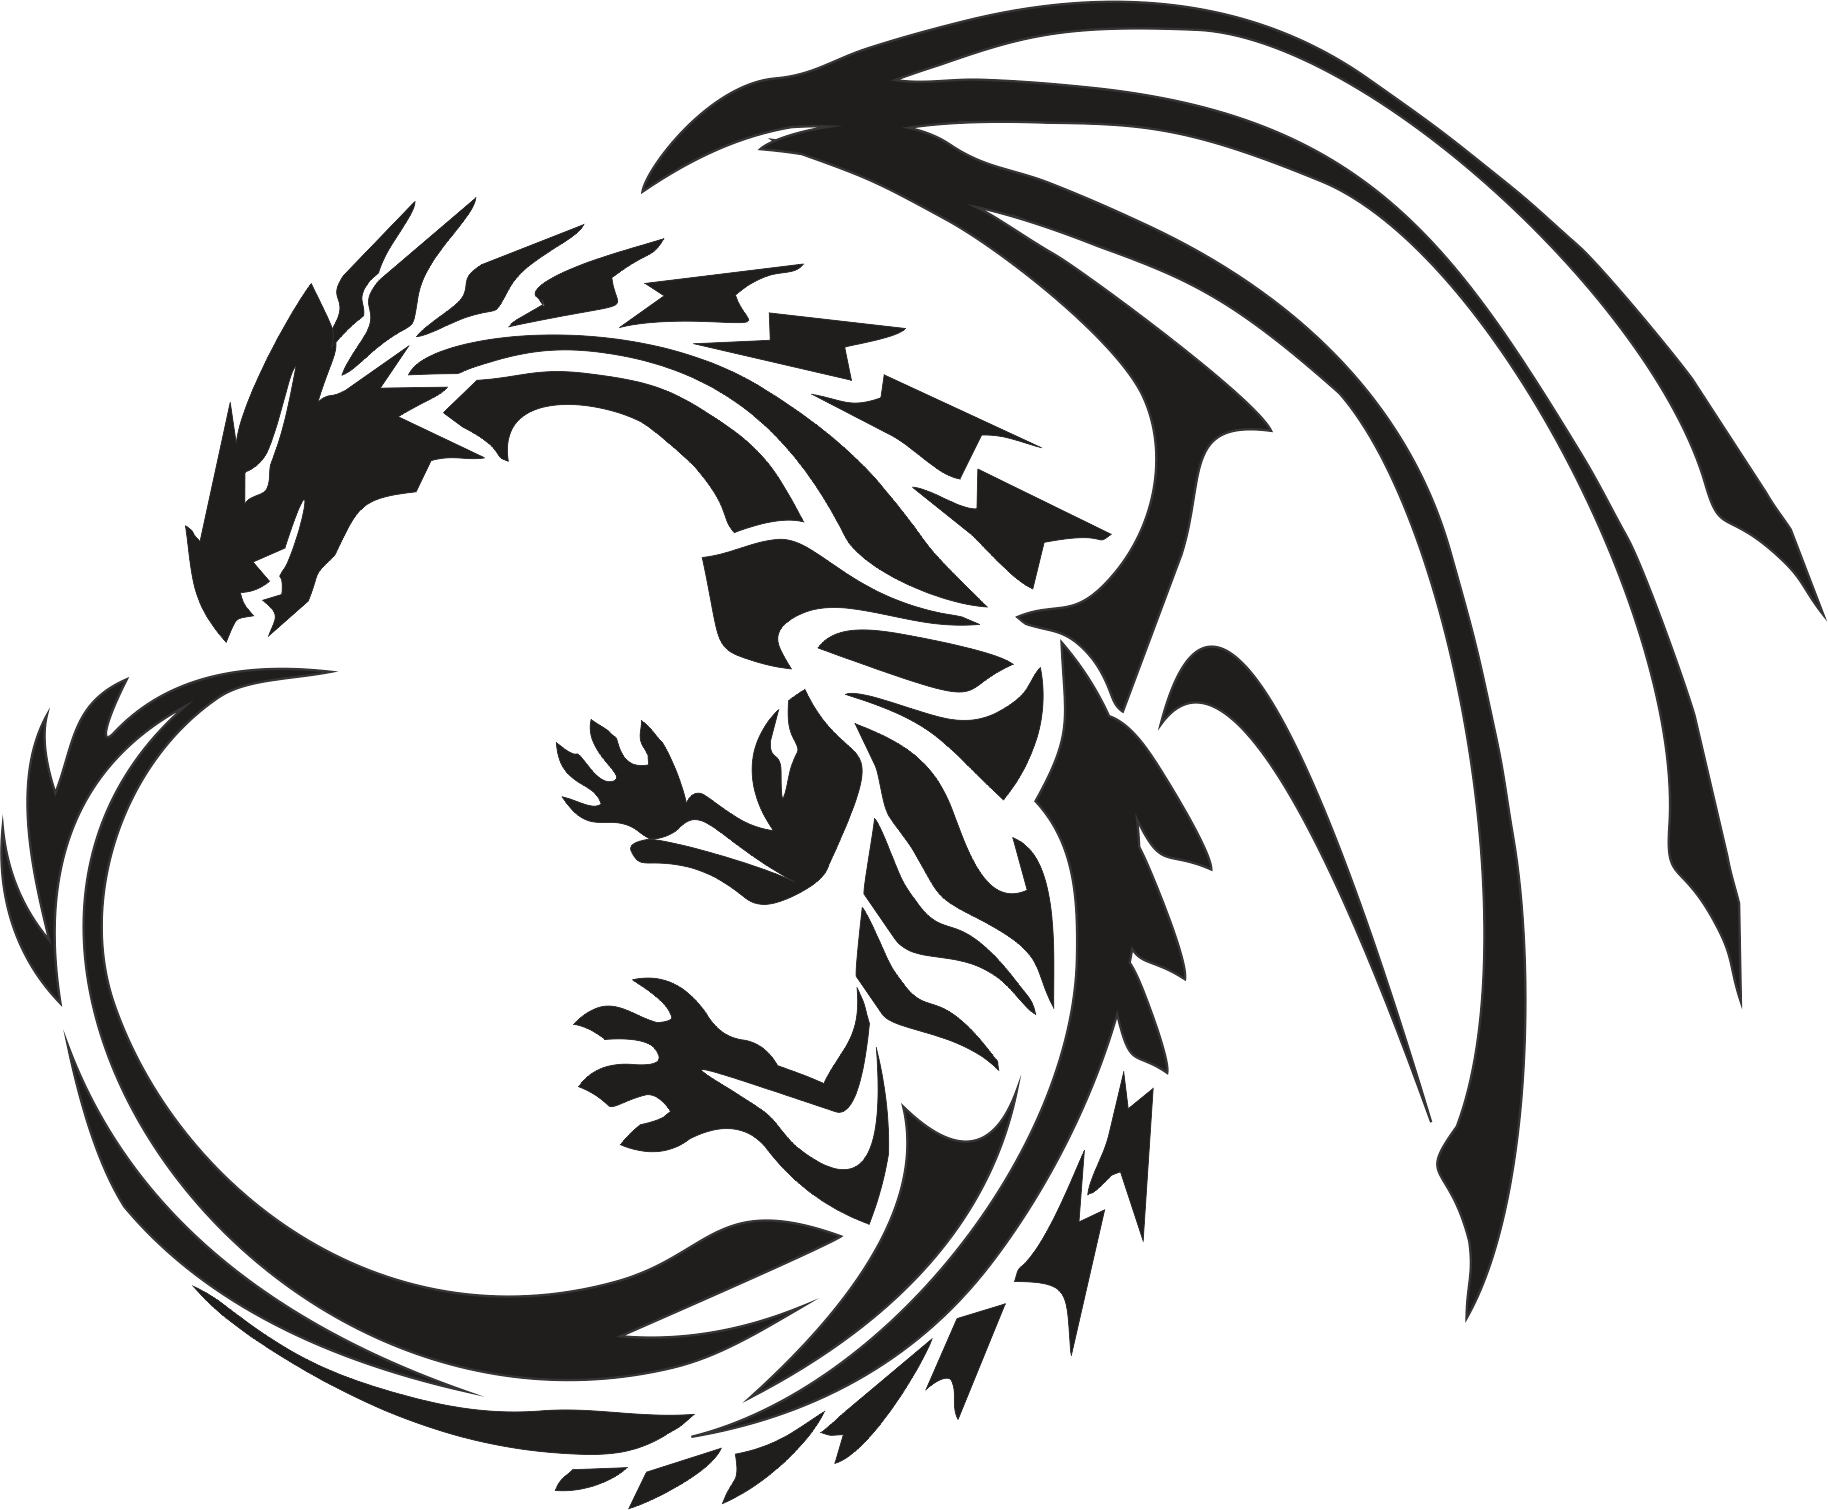 png library download Circle clipart dragon. Tattoo transparent png stickpng.